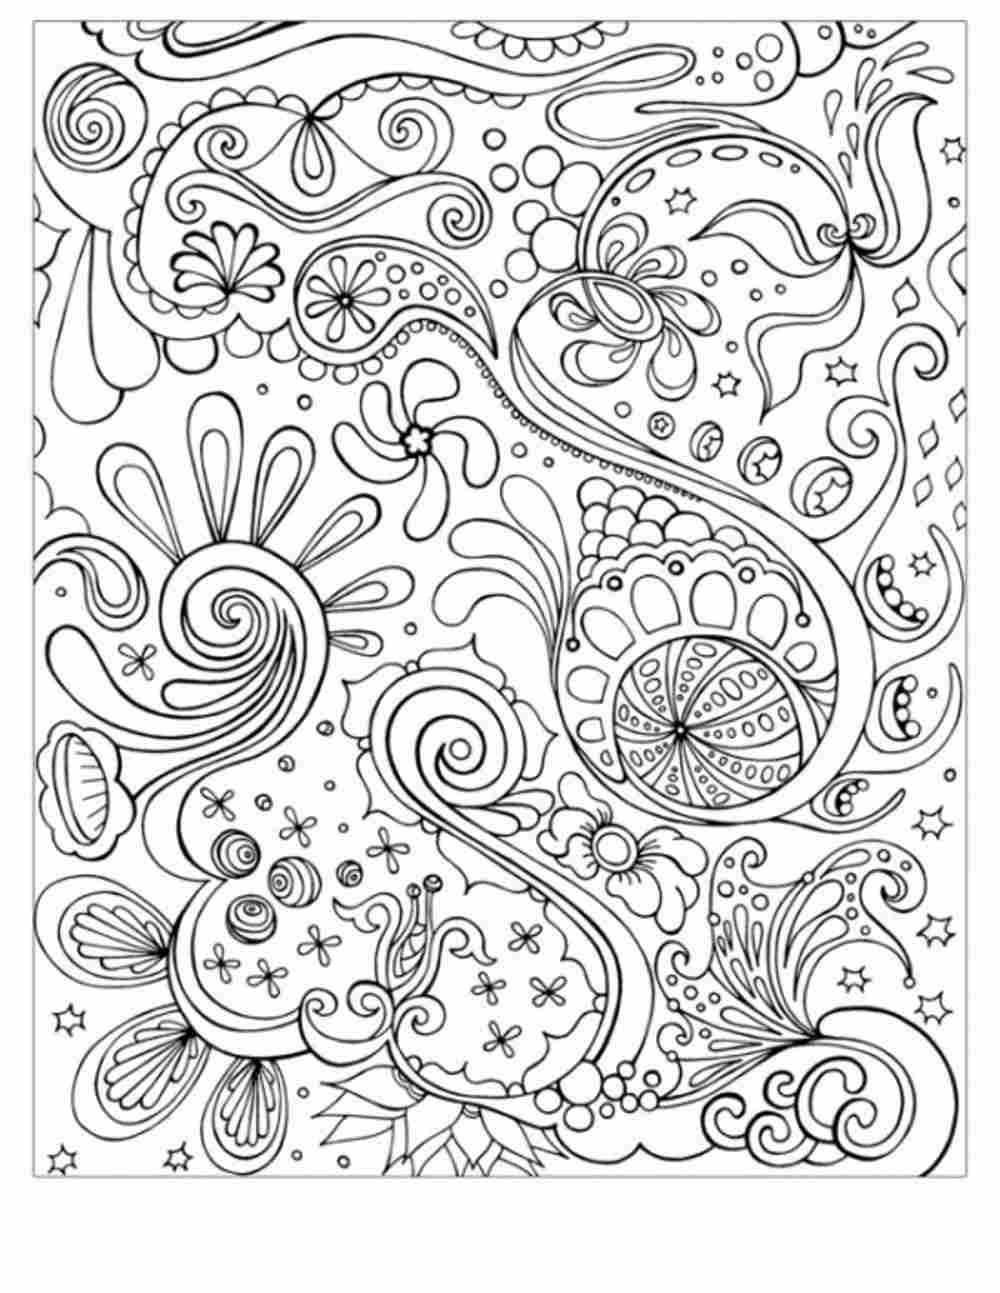 Free Printable Coloring Sheets Adults  44 Awesome Free Printable Coloring Pages for Adults